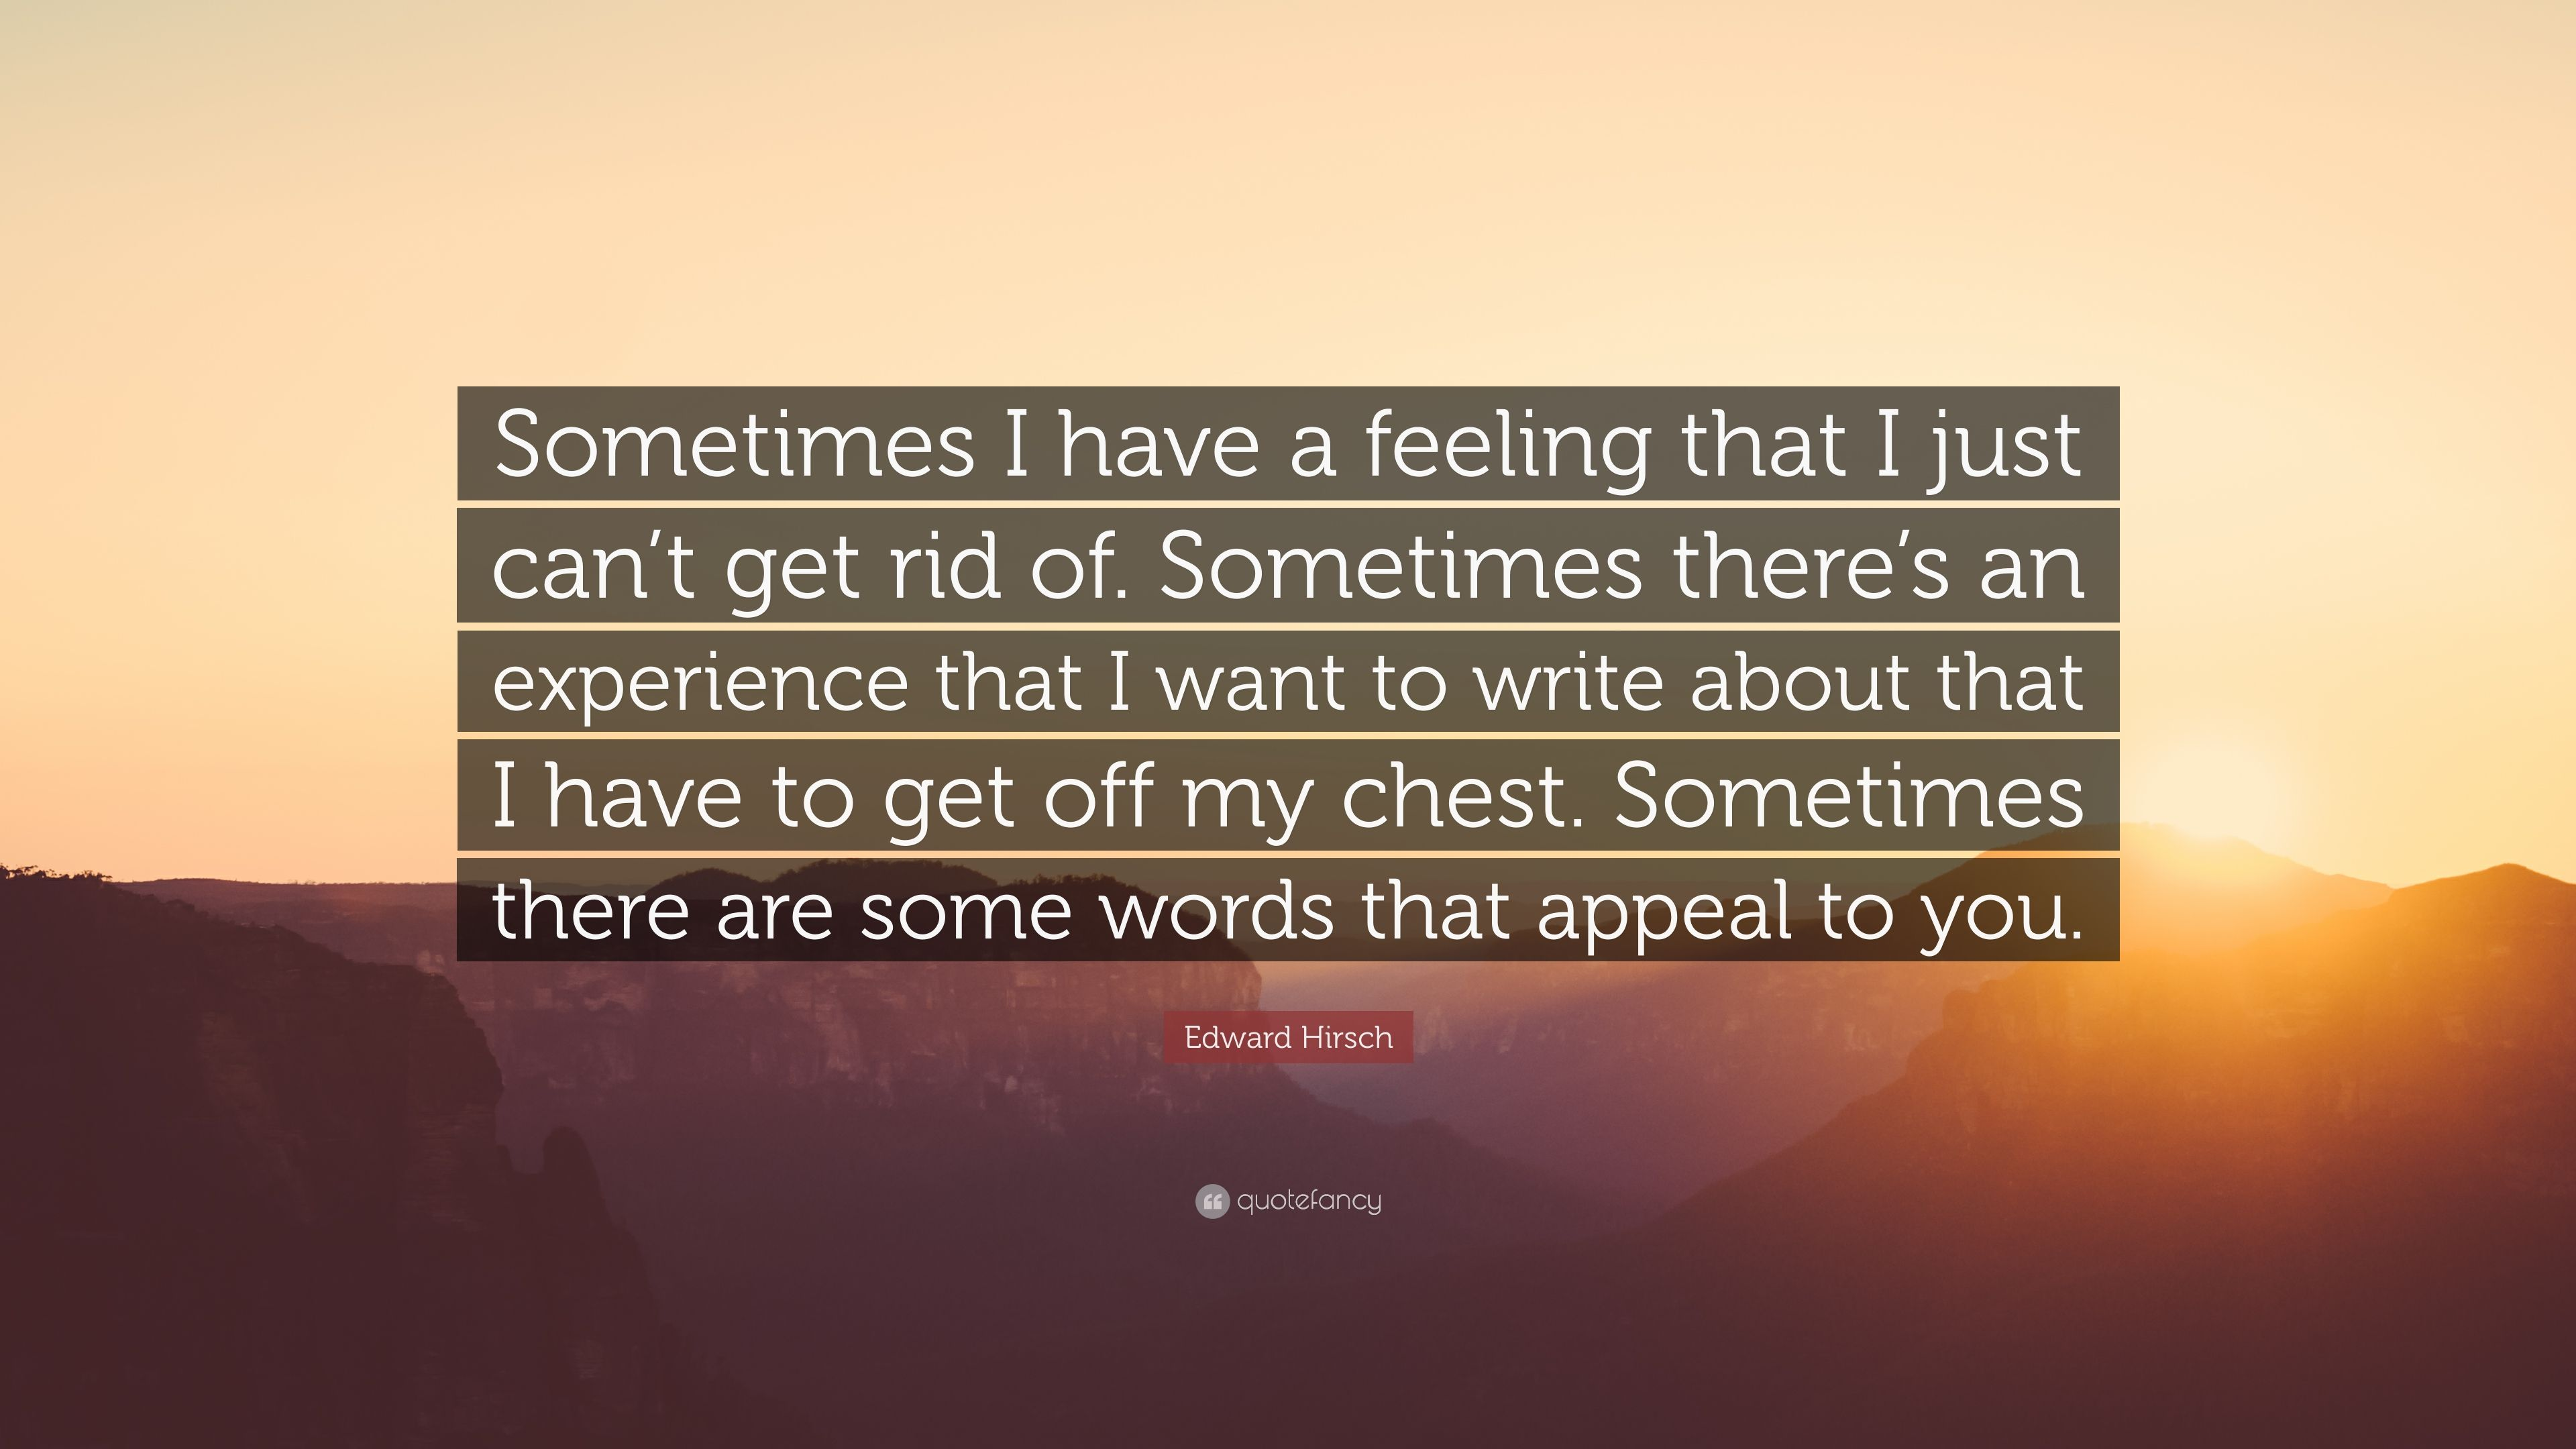 I Just Have To Get This Off My Chest >> Edward Hirsch Quote Sometimes I Have A Feeling That I Just Can T